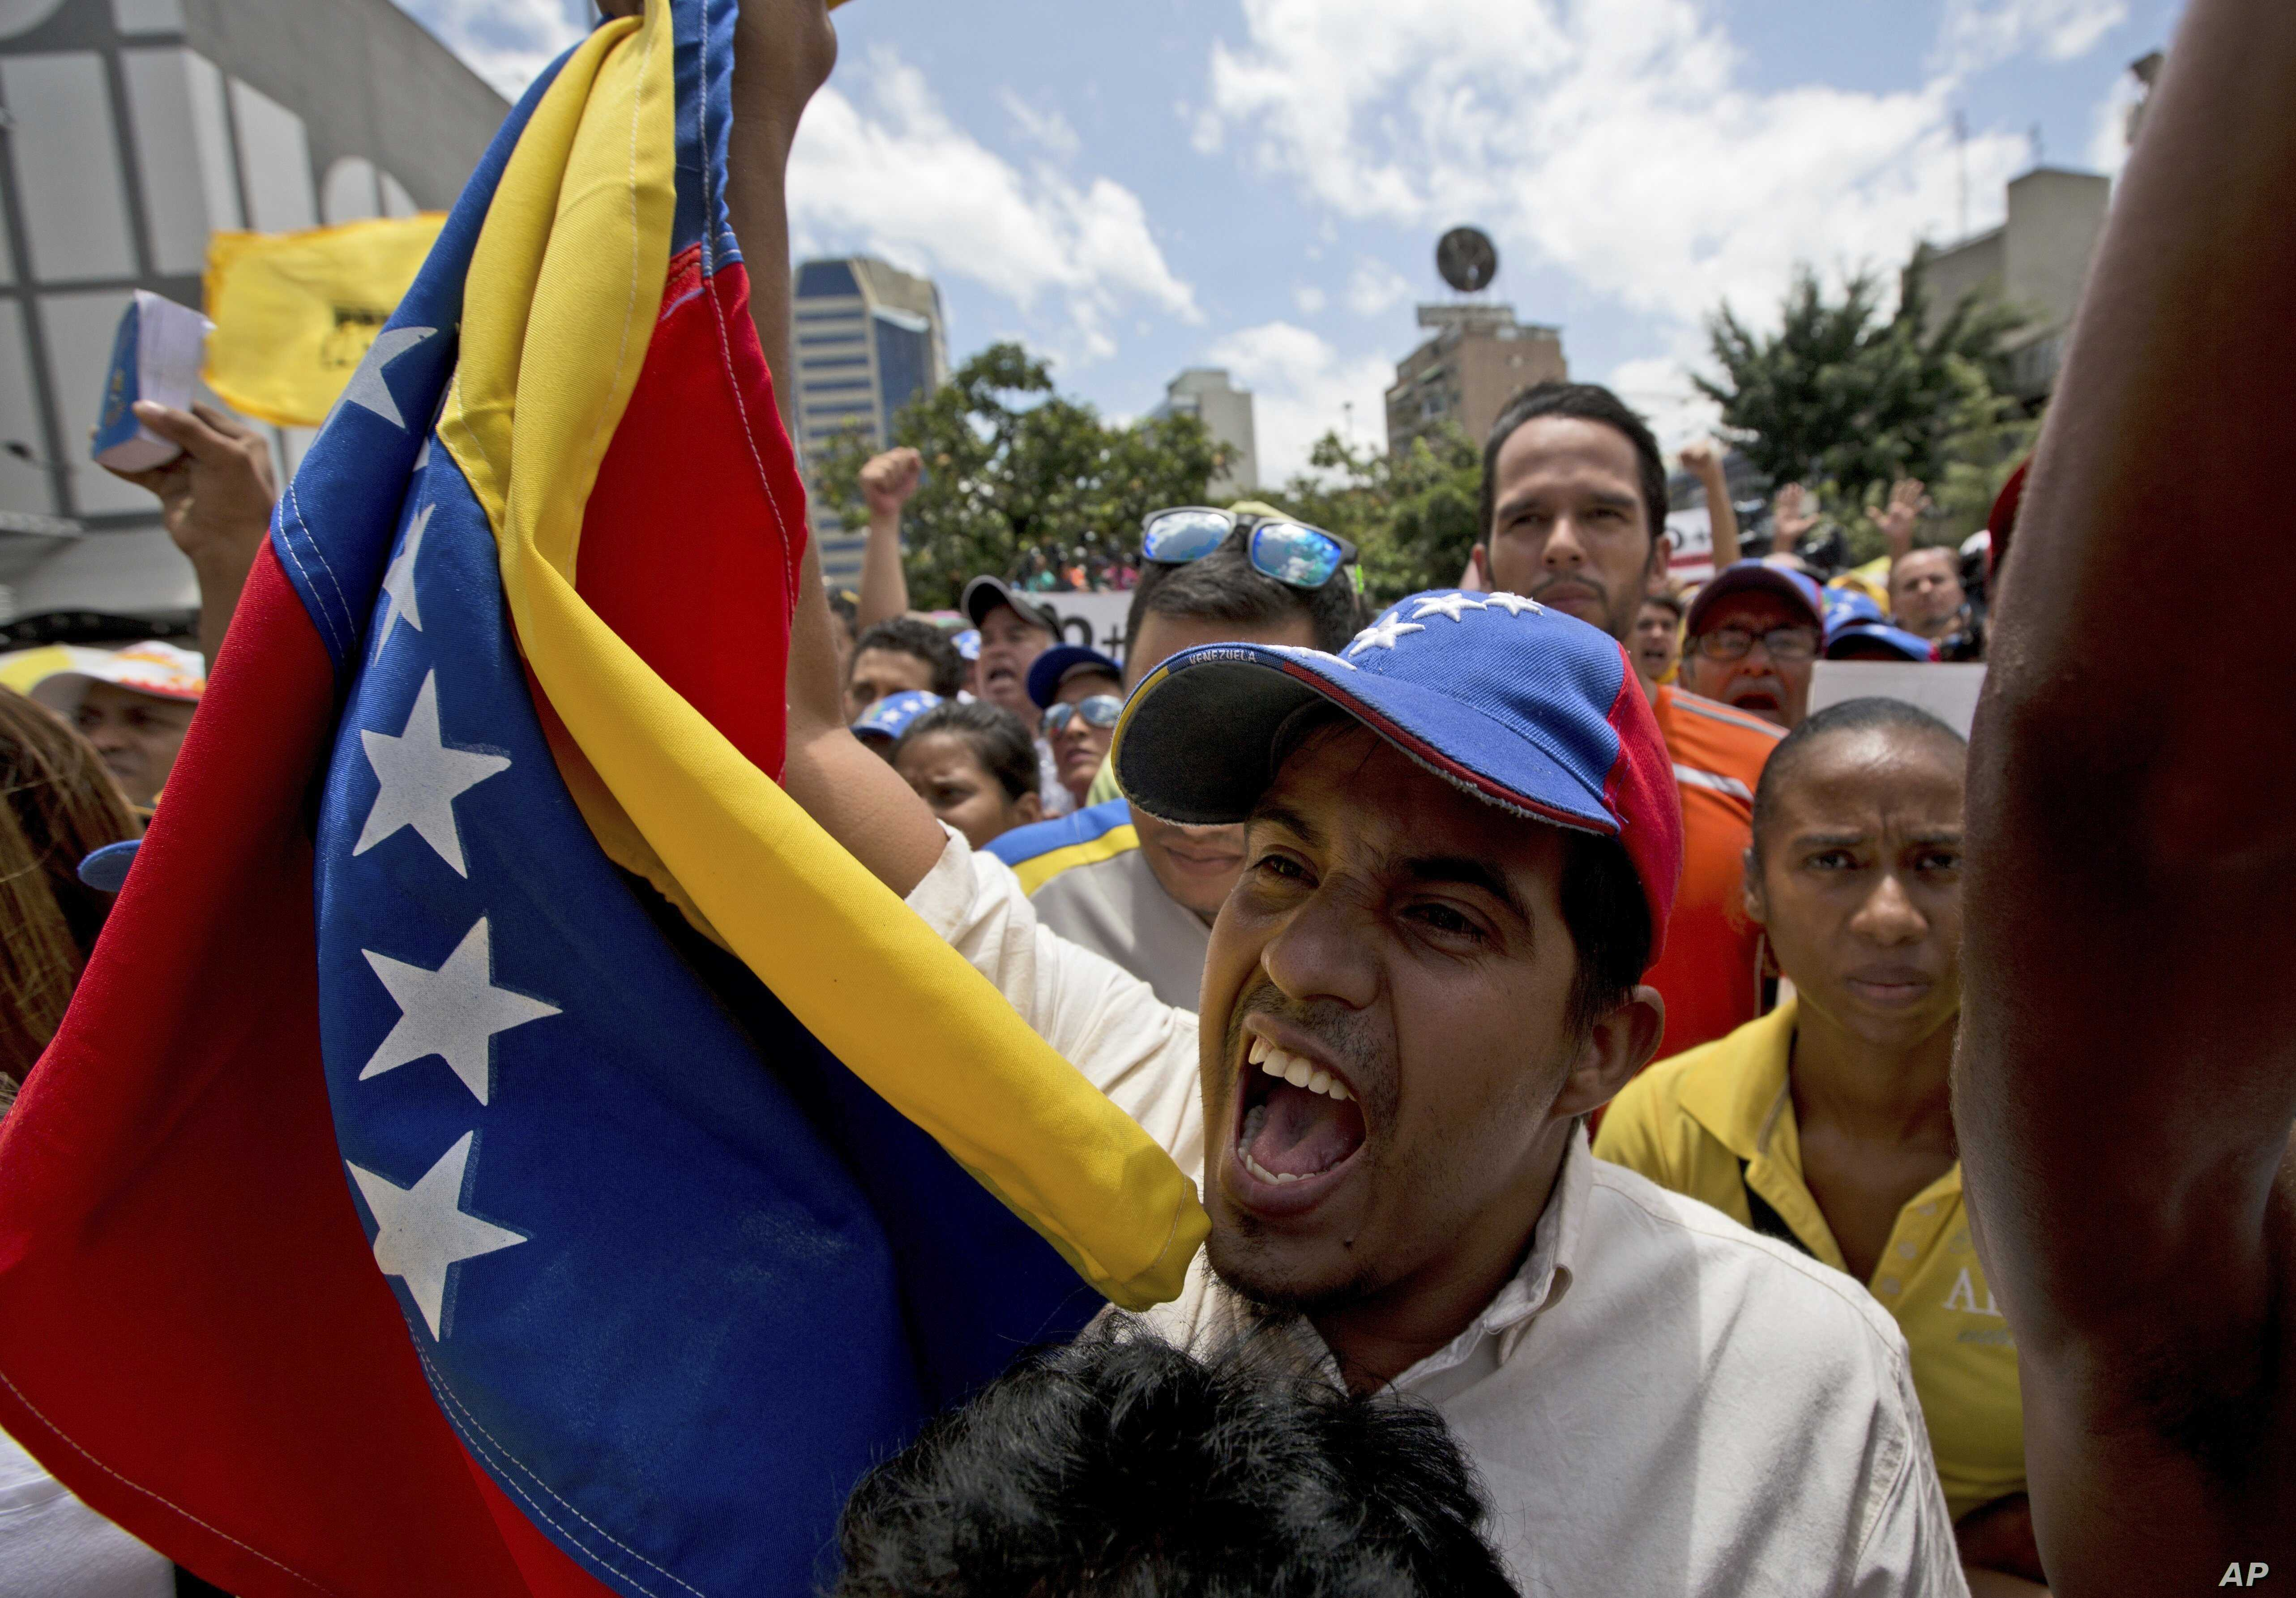 An opposition member waves a Venezuelan flag as National Assembly President Julio Borges speaks during a special public session at a square in Caracas, Venezuela, April 1, 2017.